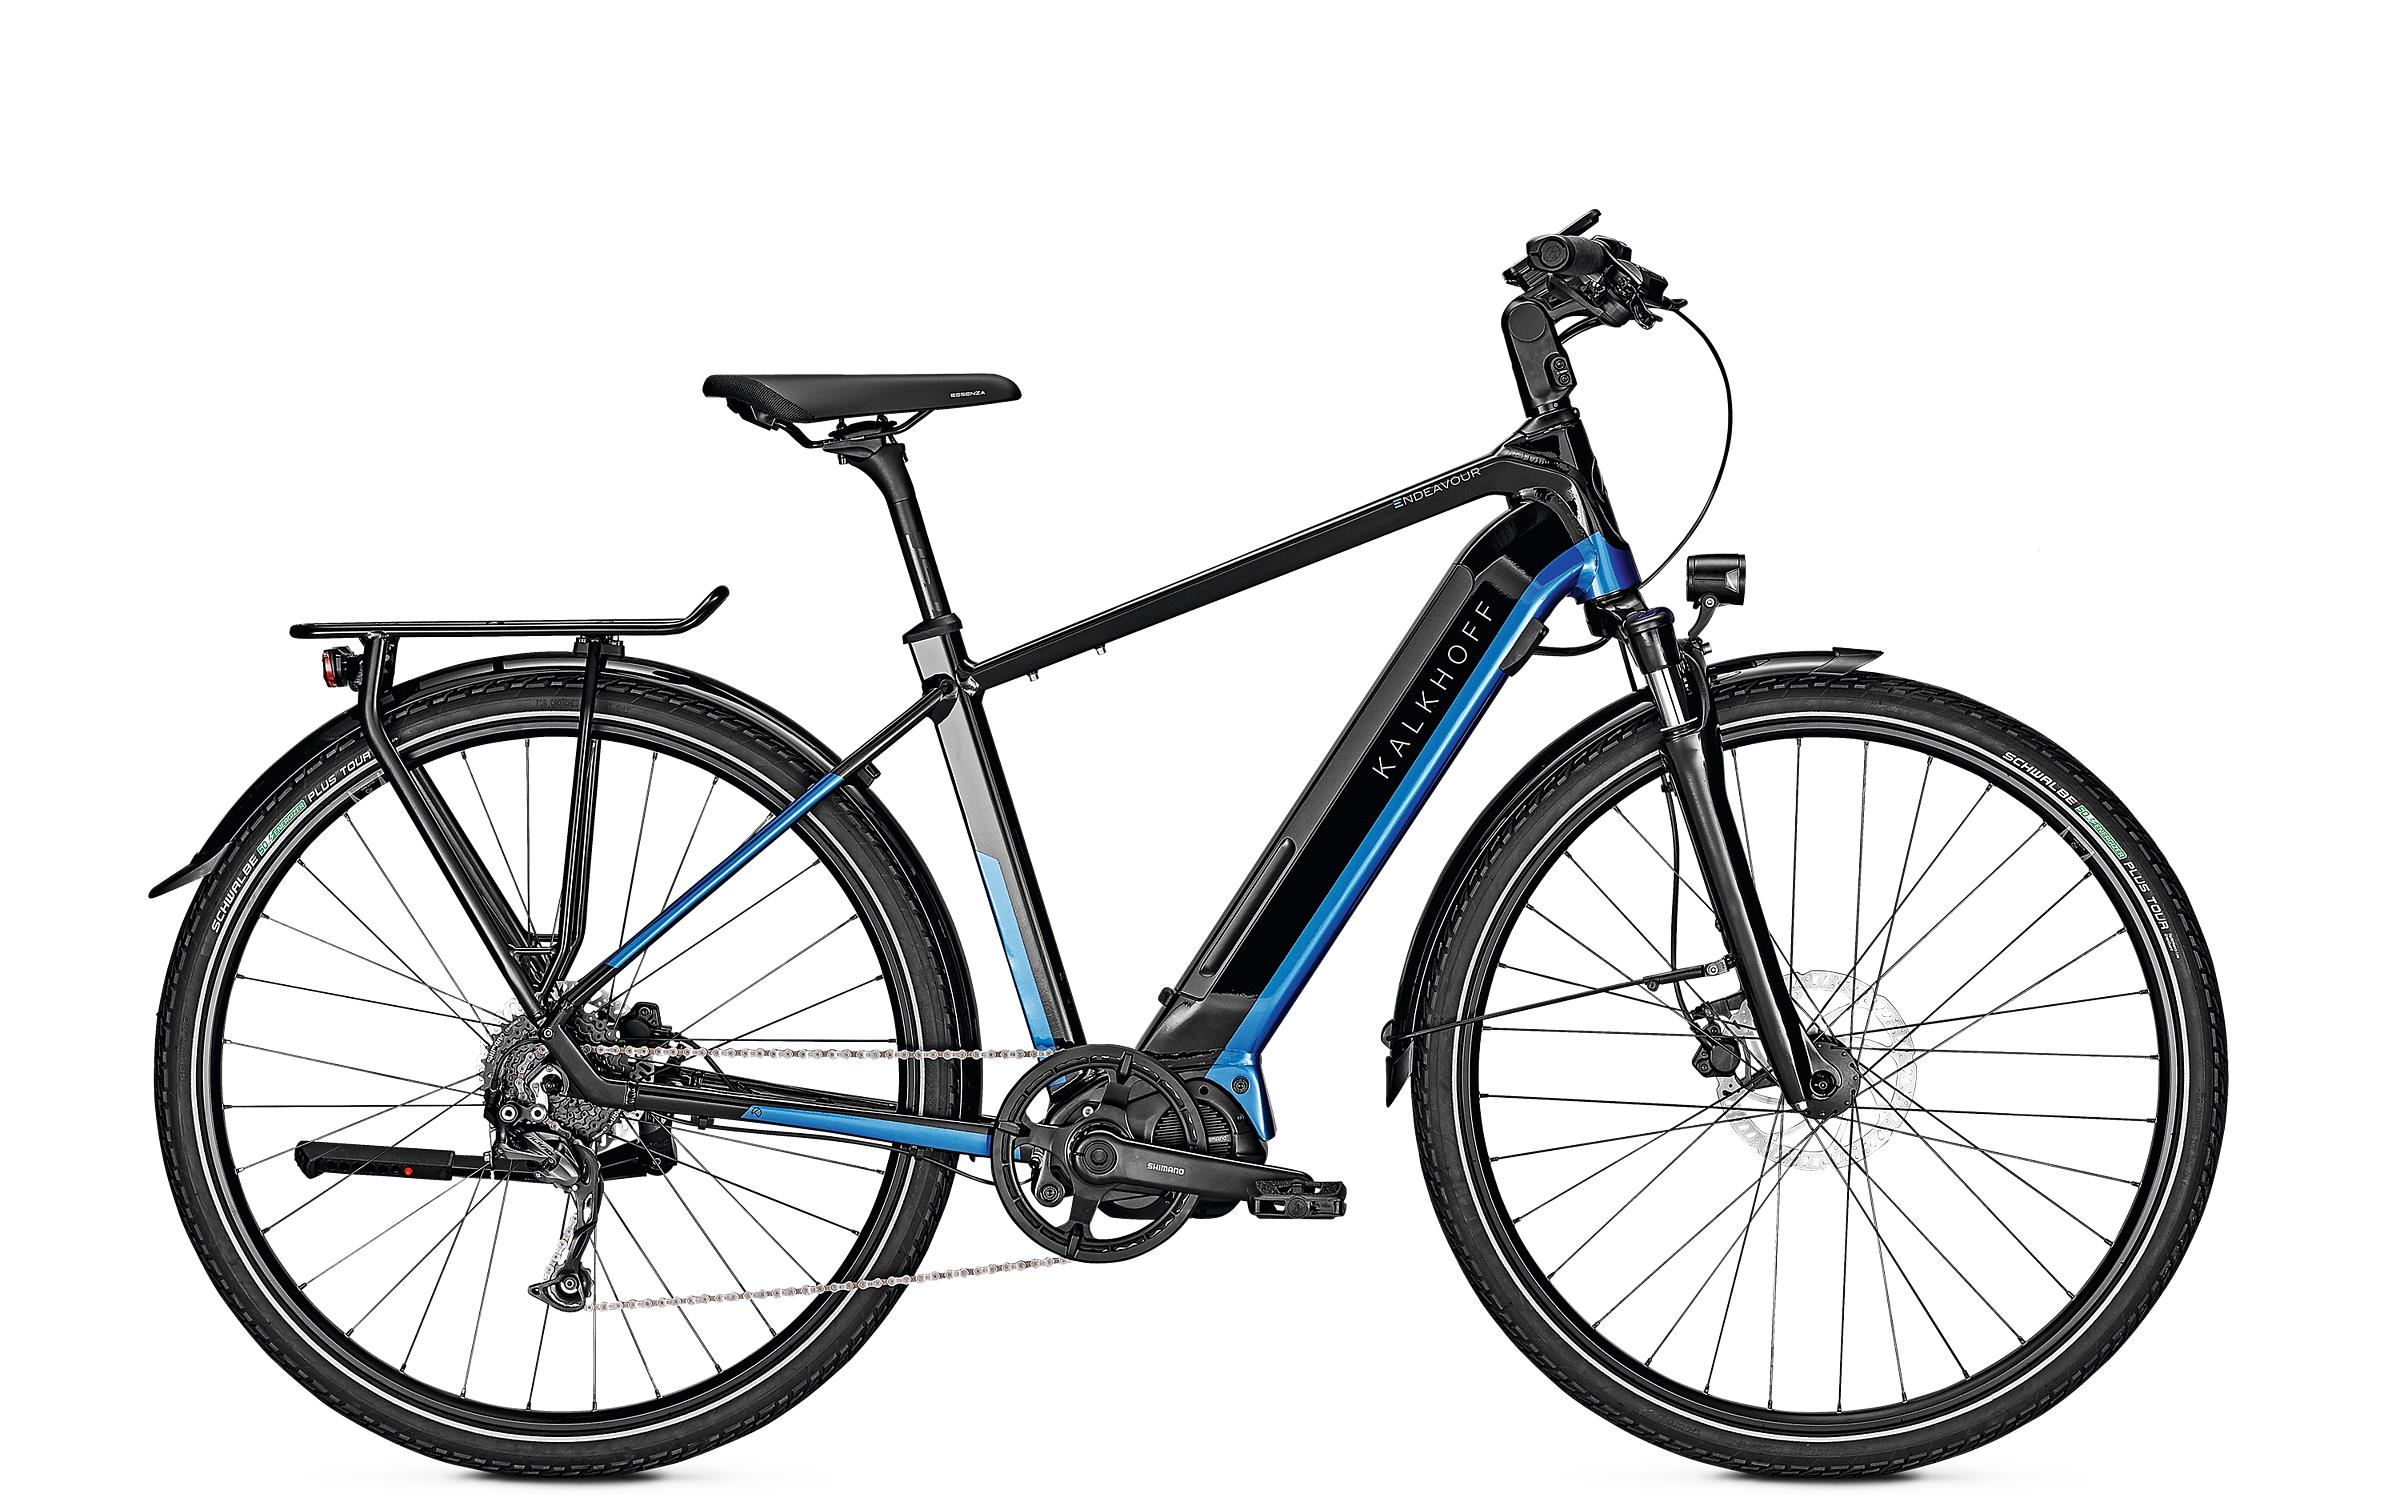 Kalkhoff ENDEAVOUR 5.S MOVE - 28 Diamant 540 Wh -  magicblack/pacificblue glossy 2019